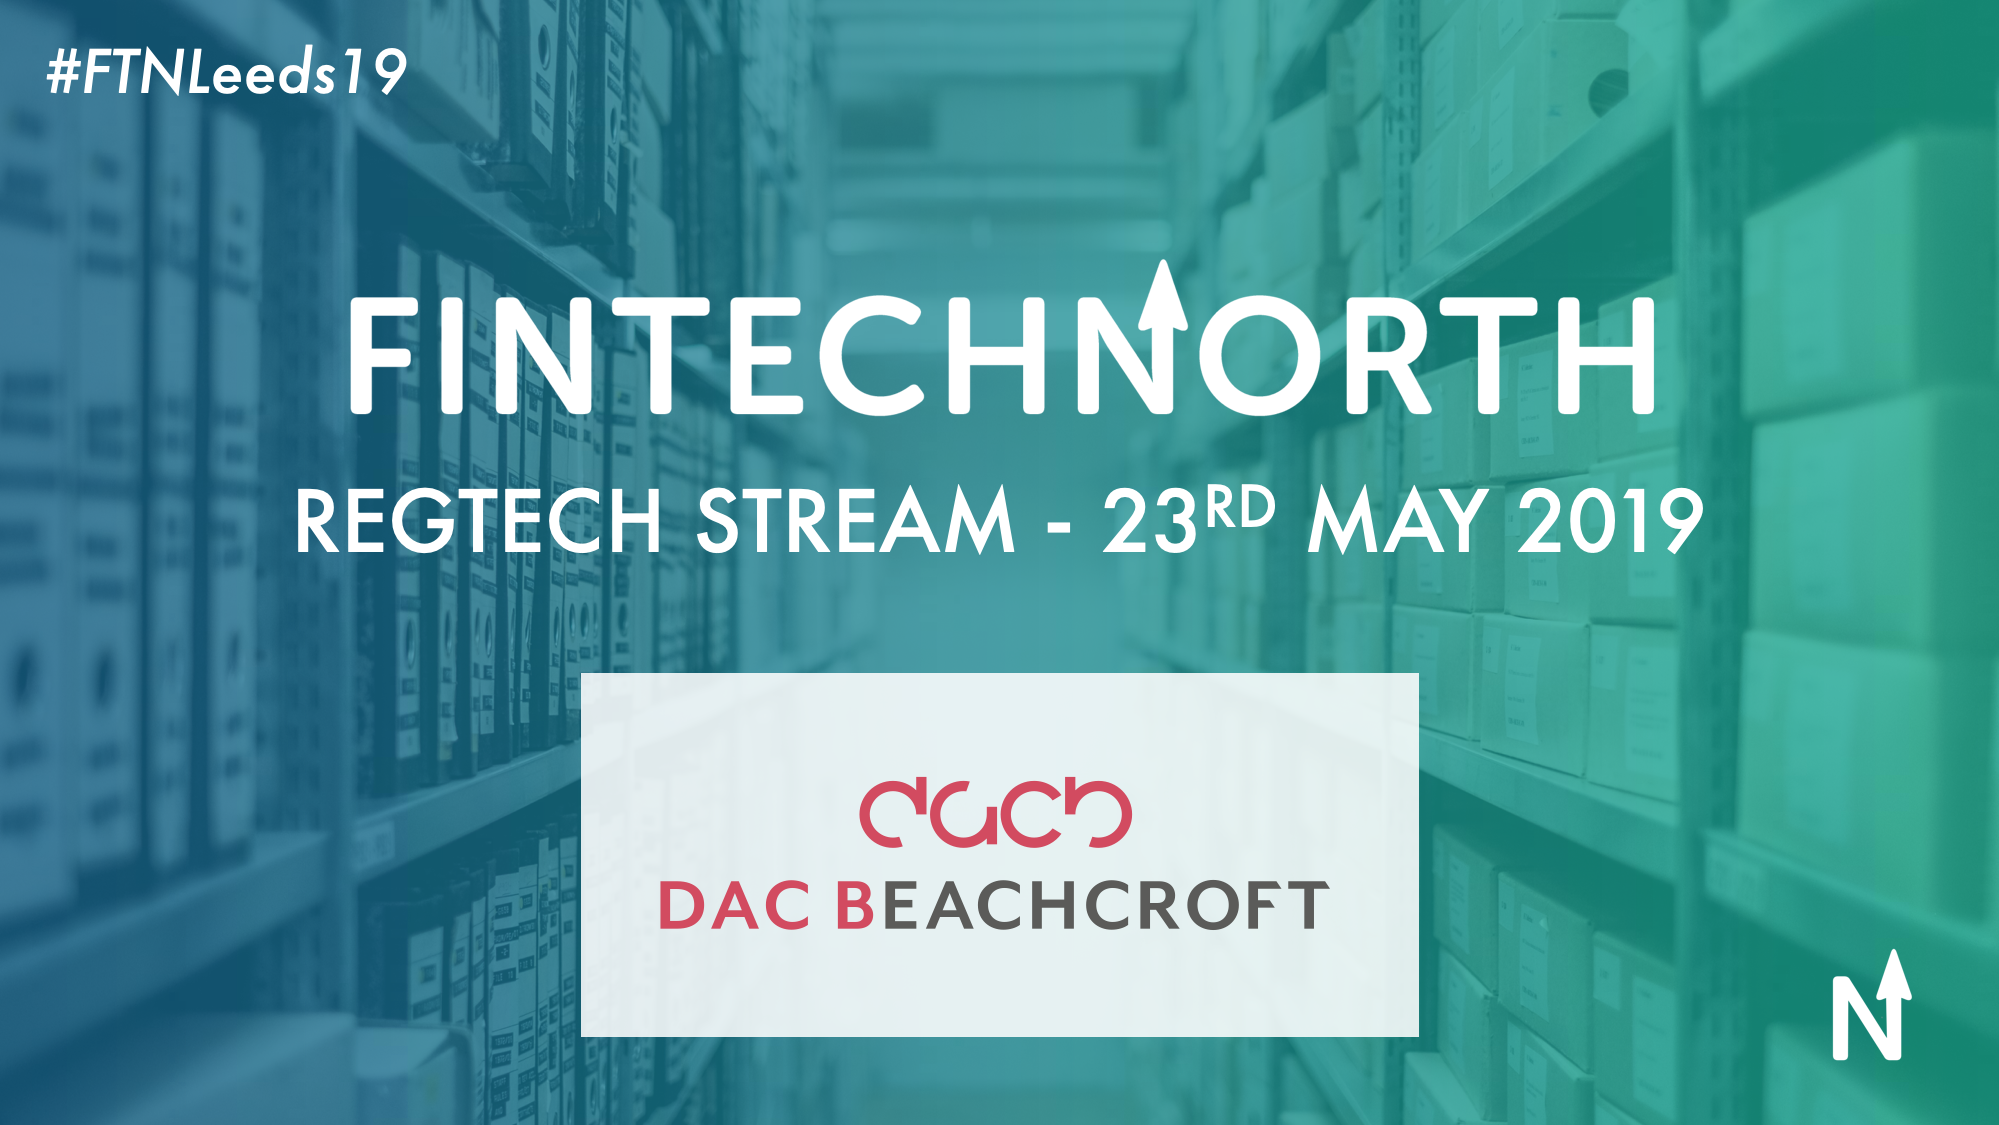 REGTECH STREAM AT FINTECH NORTH GIVES DELEGATES THE OPPORTUNITY TO INFLUENCE POLICY